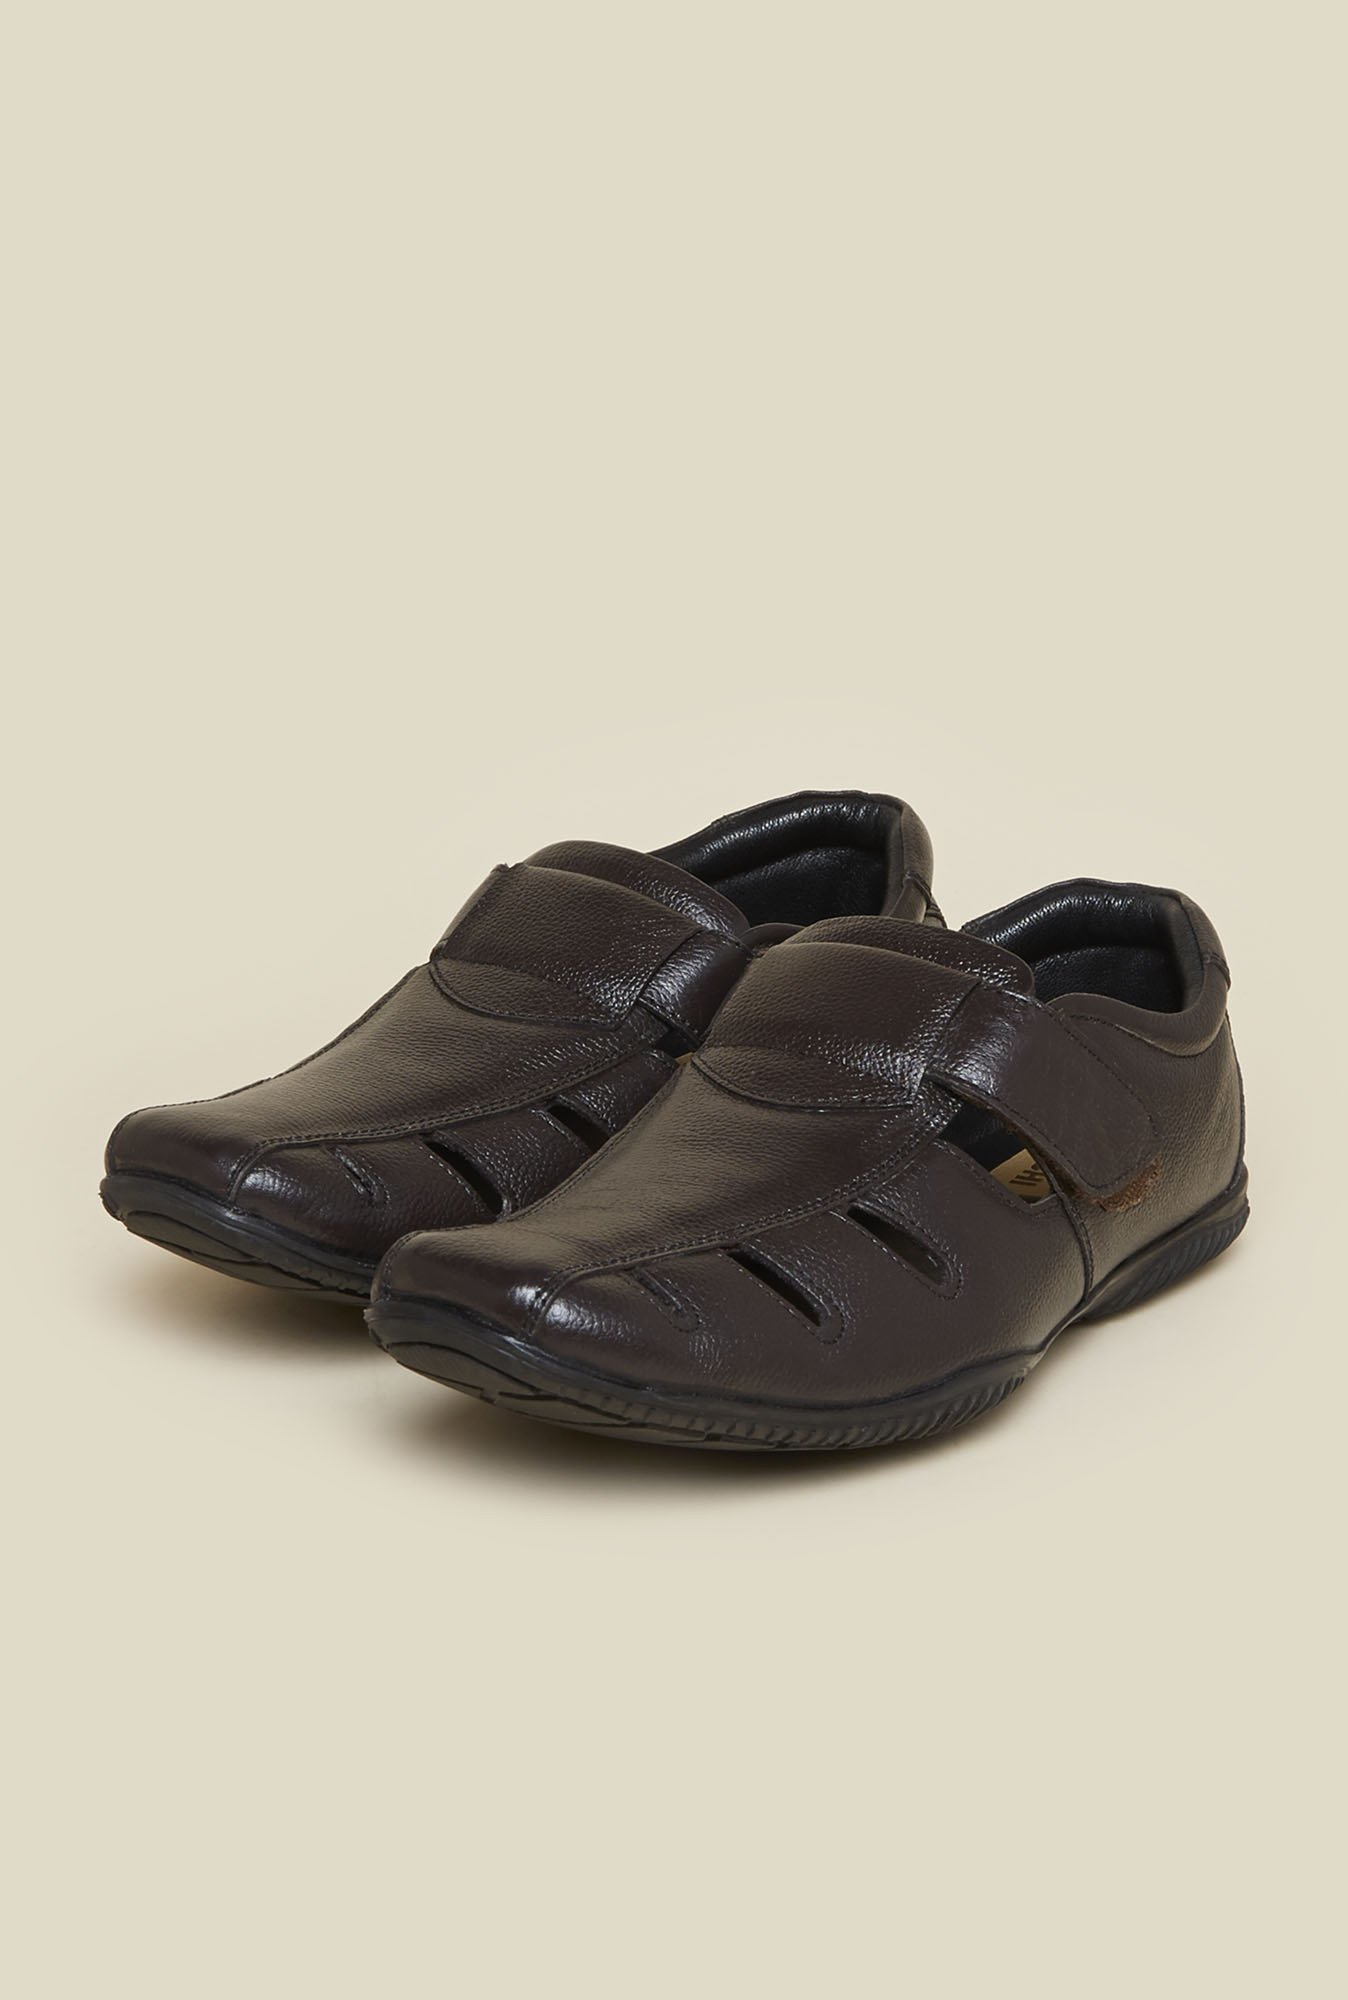 Mochi Dark Brown Fisherman Sandals